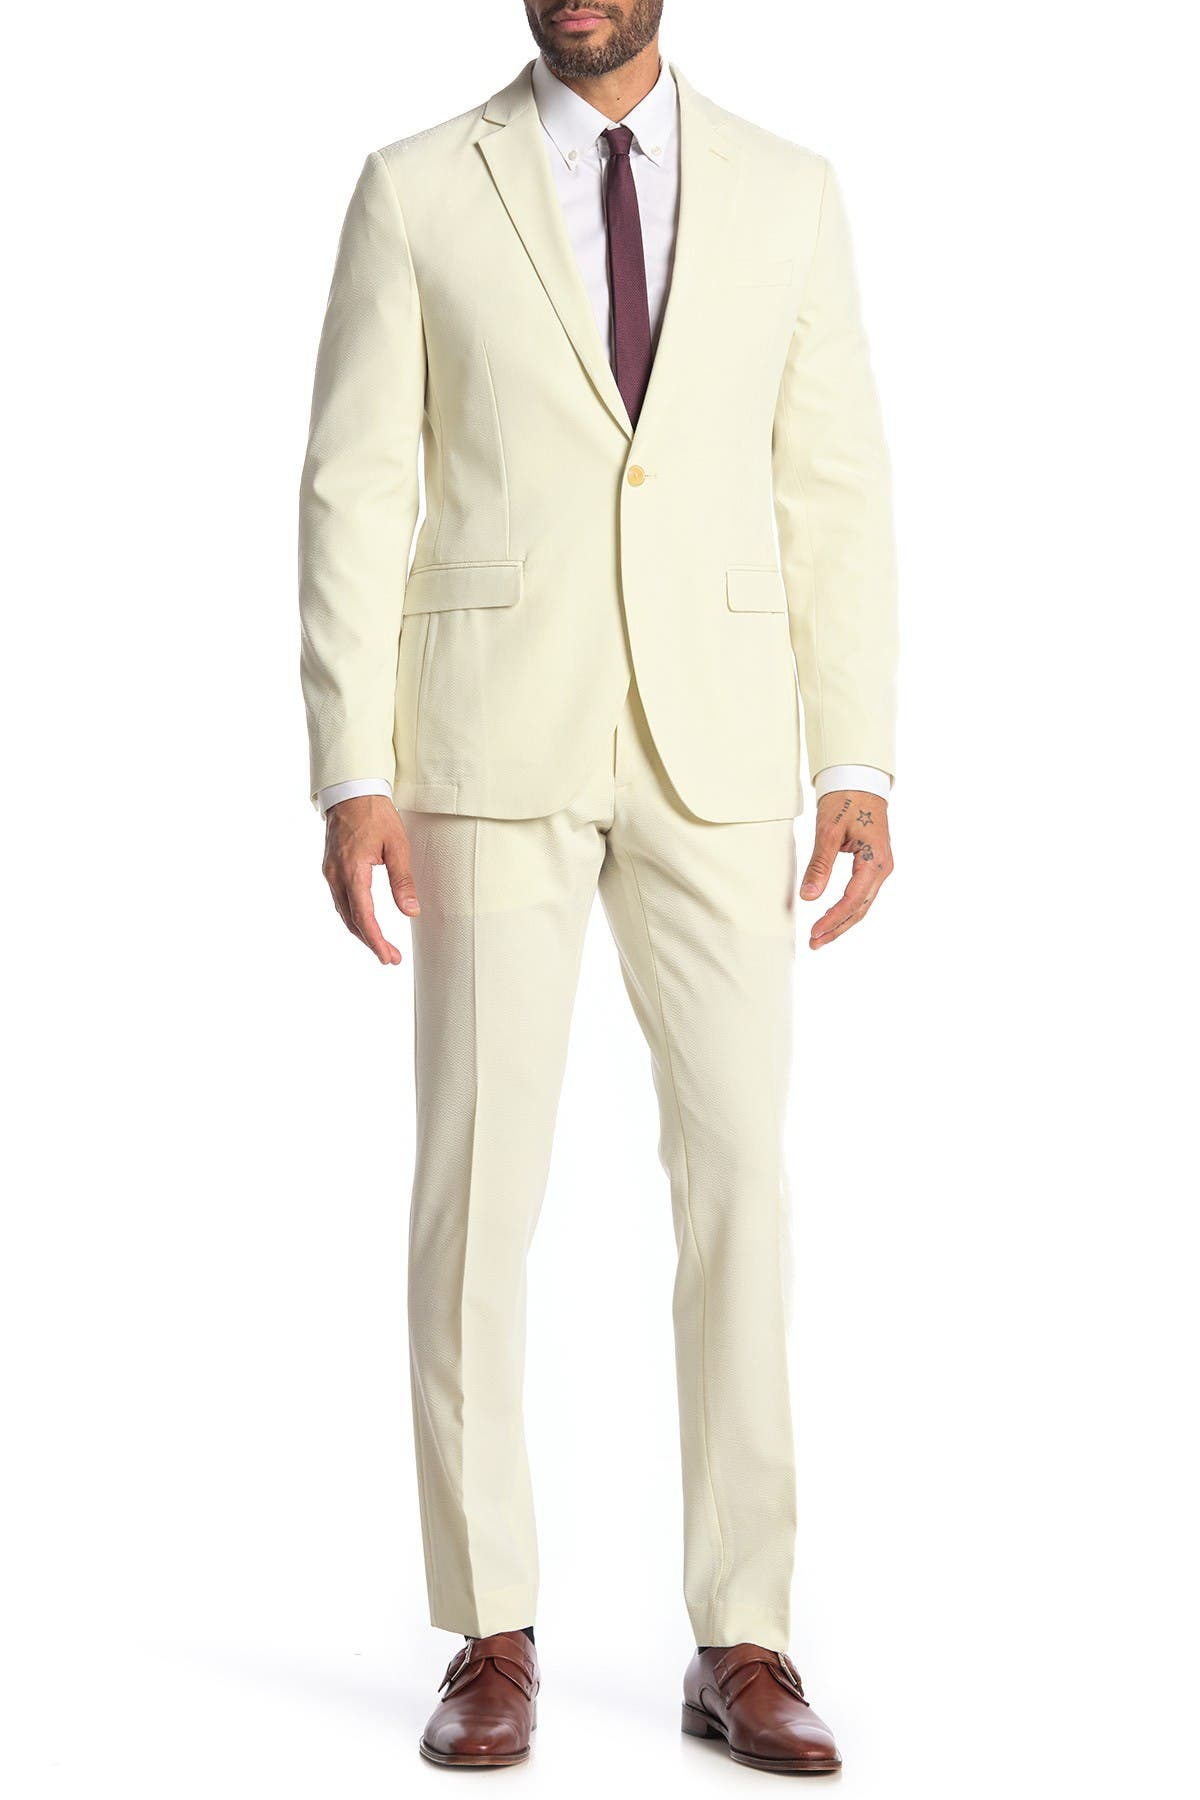 savile row suits shirt beige all sizes brand new SIZE 15 INS COLLAR